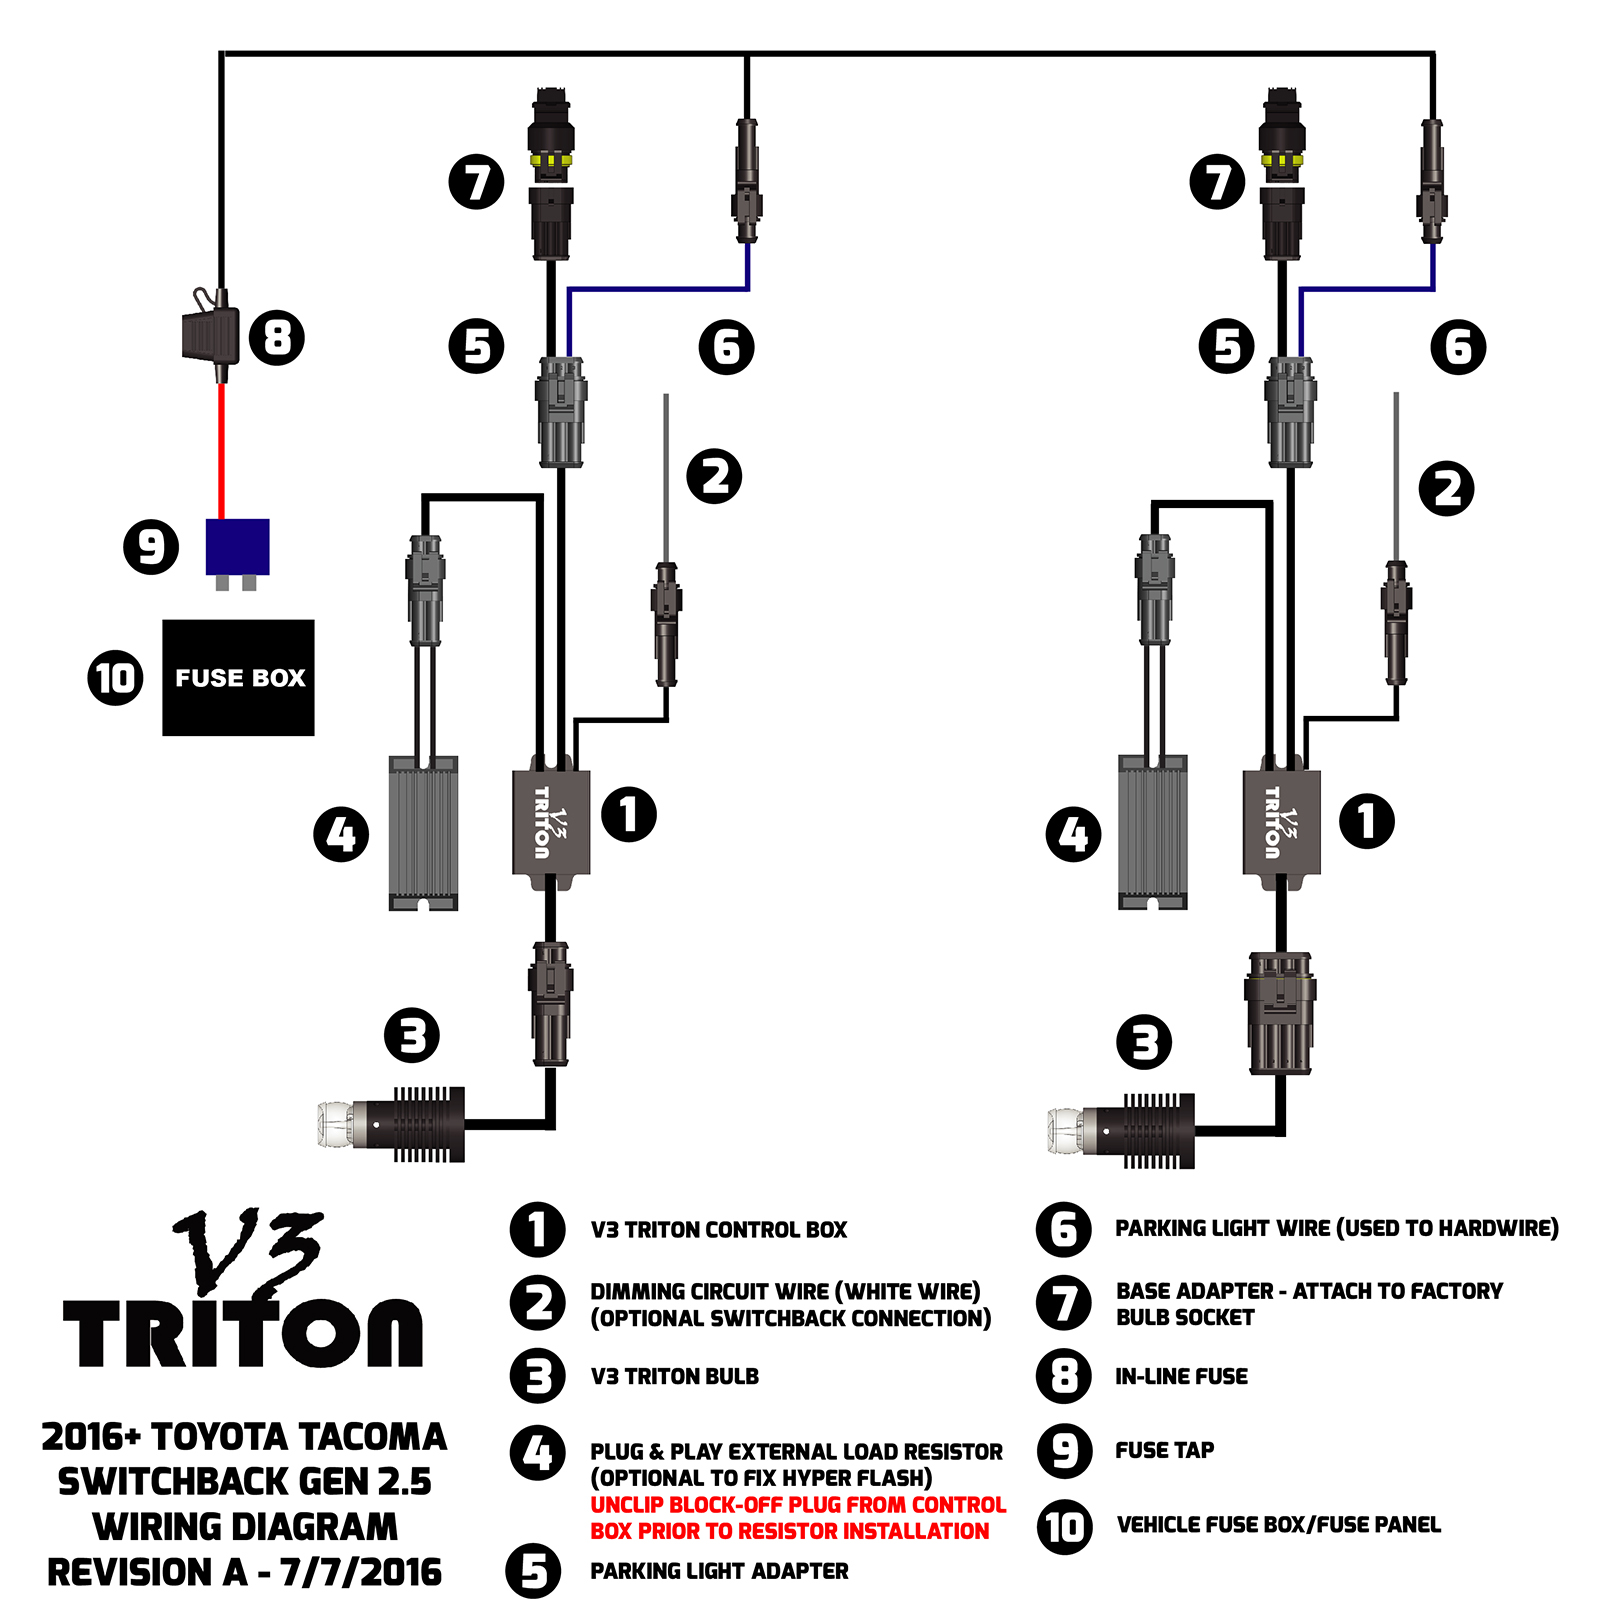 V3_Gen_2.5_A_Tacoma wiring diagrams Toyota Wiring Diagrams Color Code at reclaimingppi.co